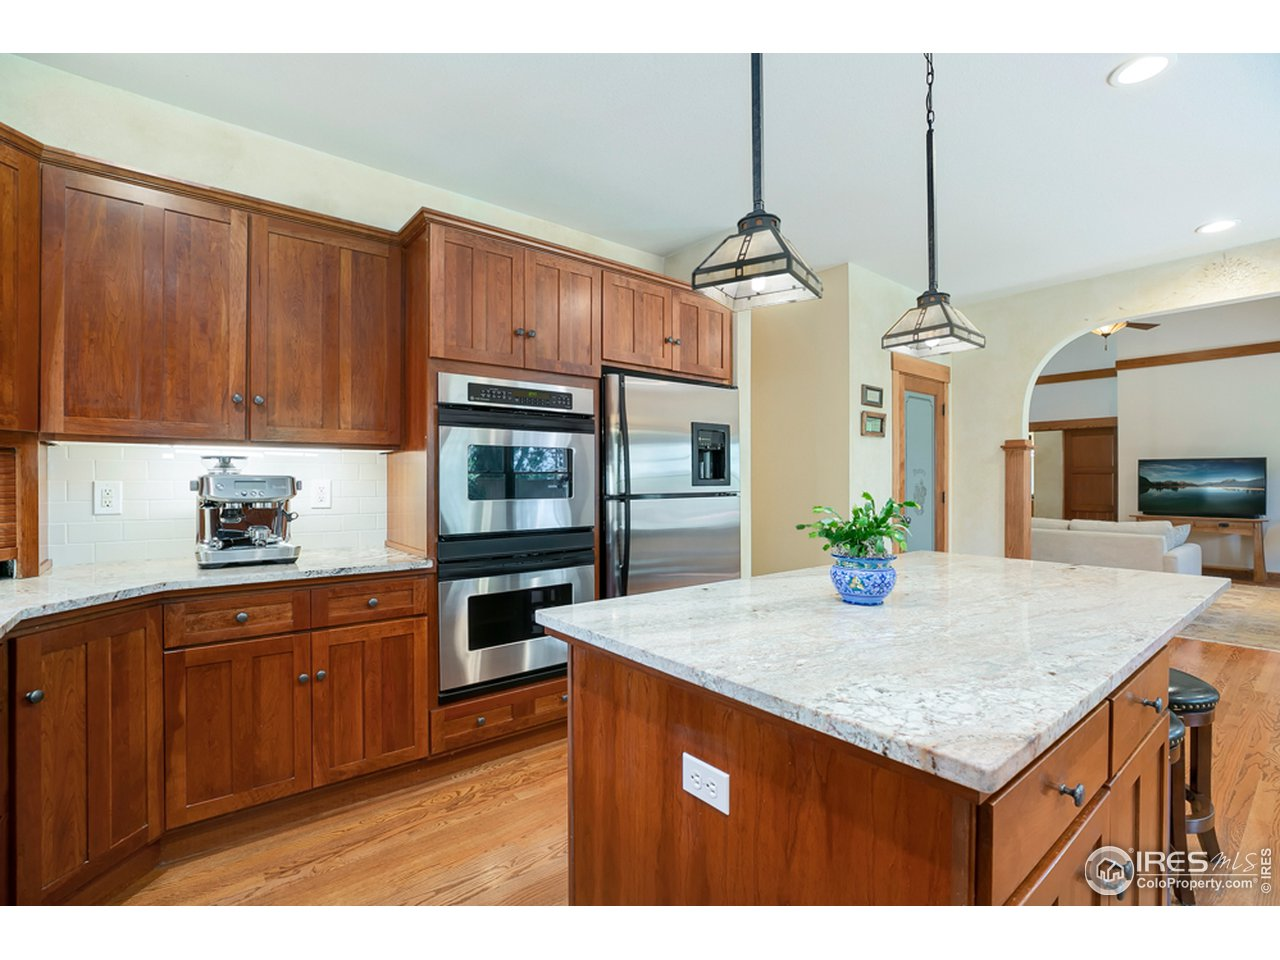 Plenty of counter space and double ovens!